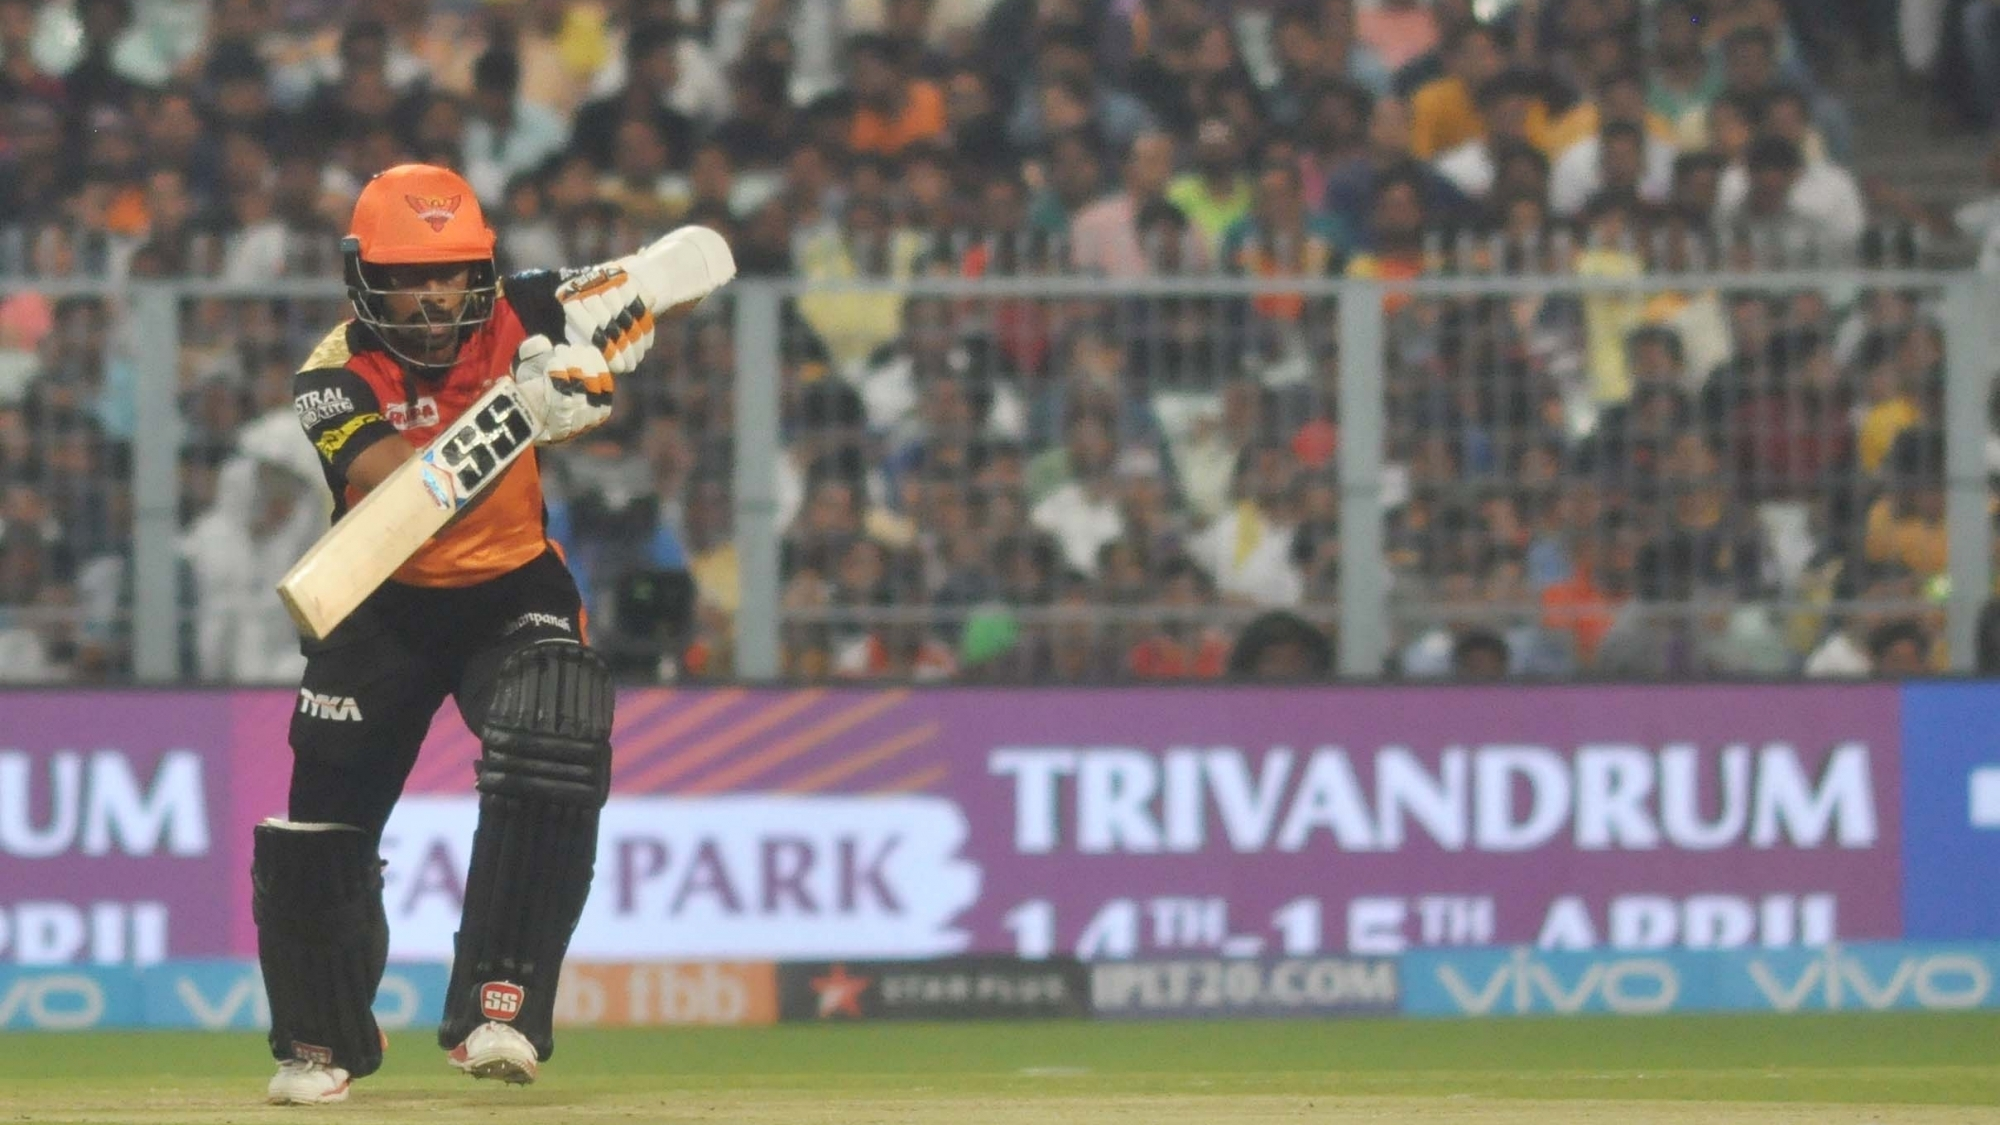 IPL 2018: Flexible Wriddhiman Saha pleased to open the innings for Sunrisers Hyderabad